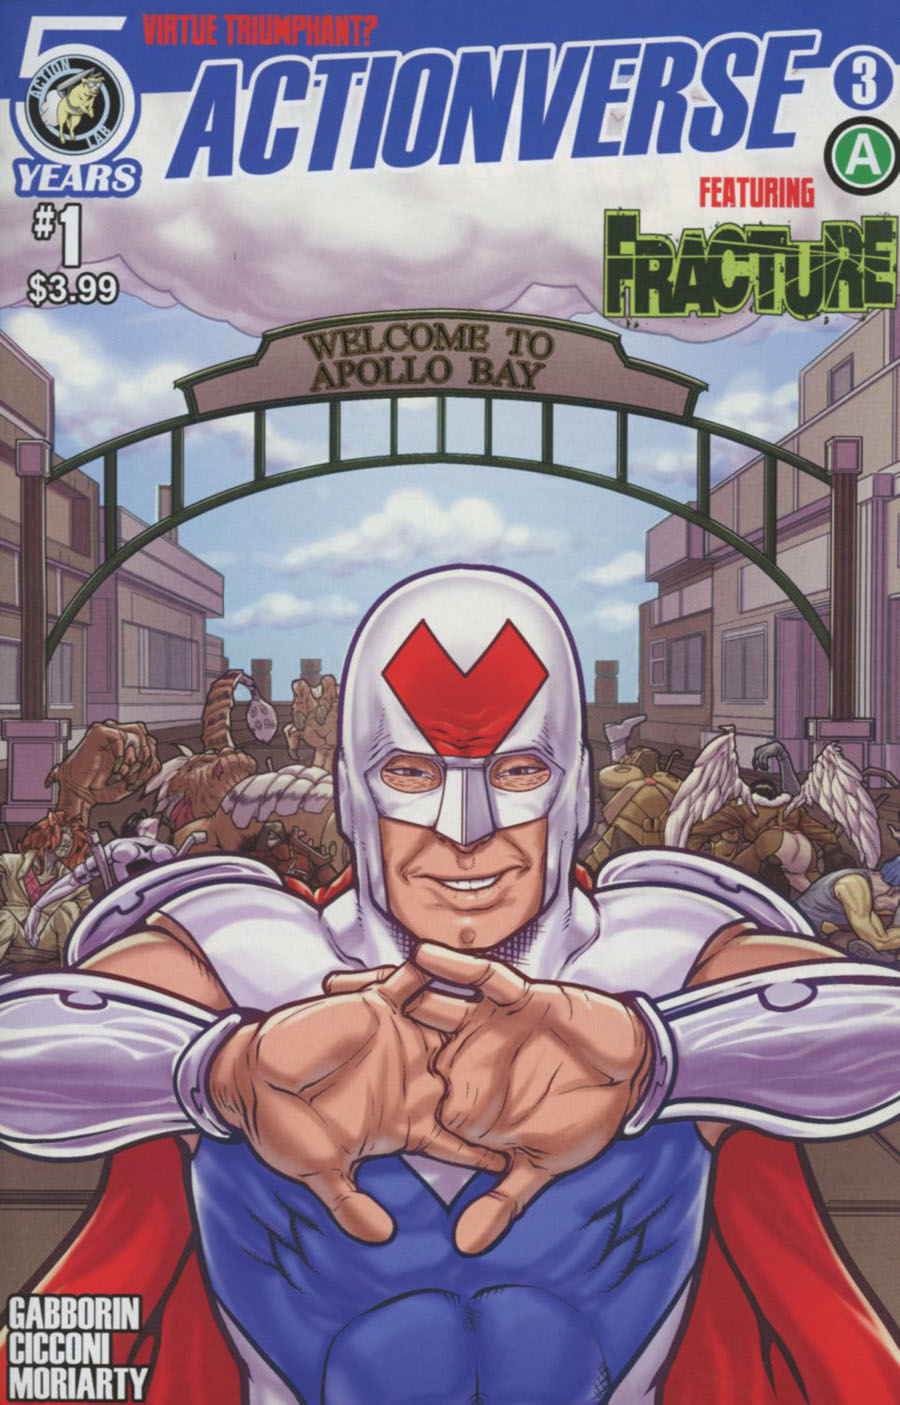 Actionverse #3 Featuring Fracture Cover A Regular Chad Cicconi Cover